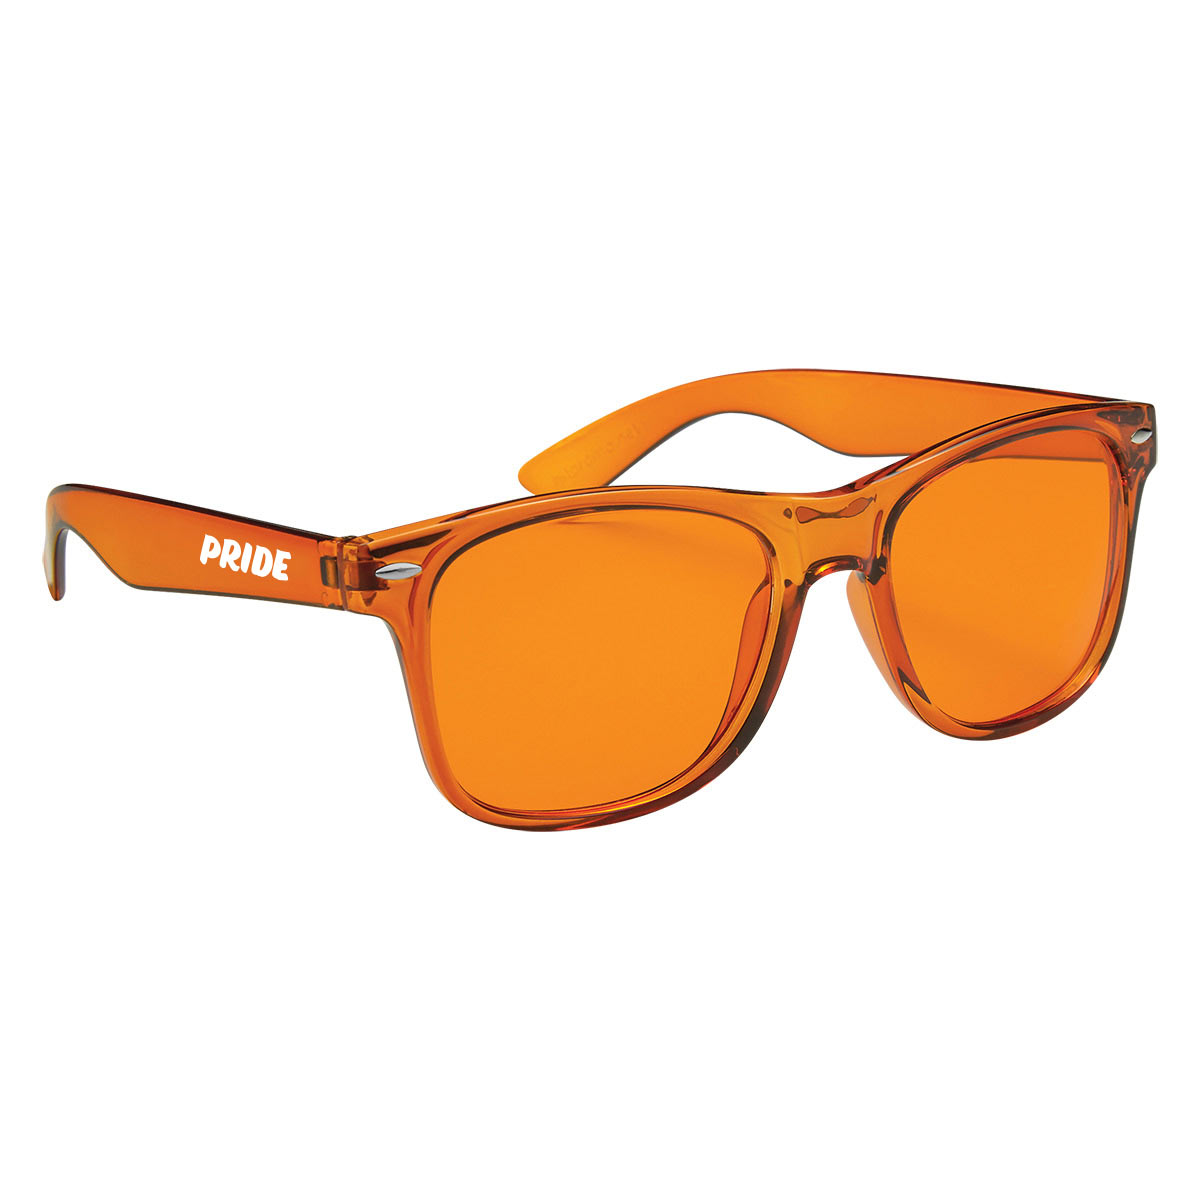 315543 maui translucent sunglasses one color imprint on arm white only